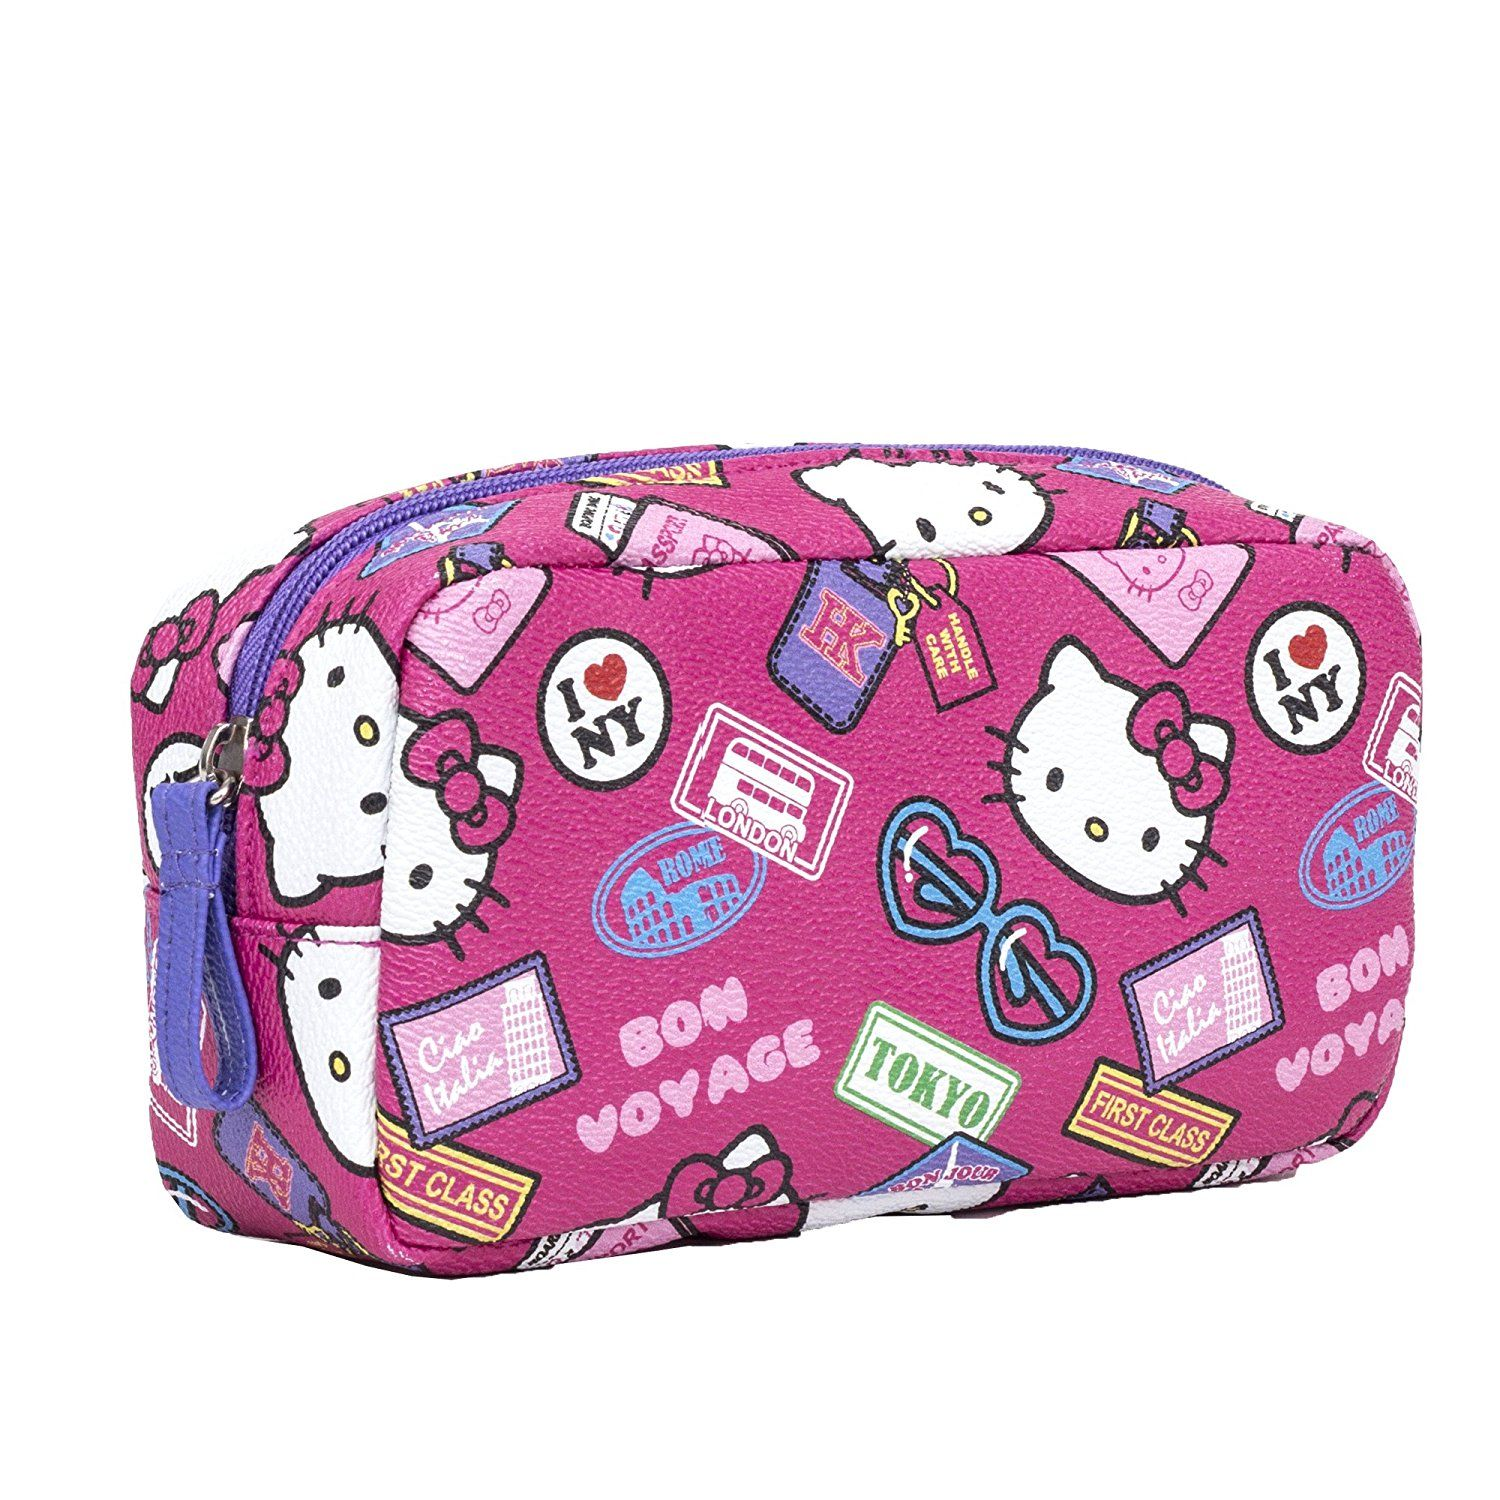 Official brand new sanrio hello kitty bon voyage cosmetic pouch one size  jpg 1500x1500 Bon voyage 36004d53ad